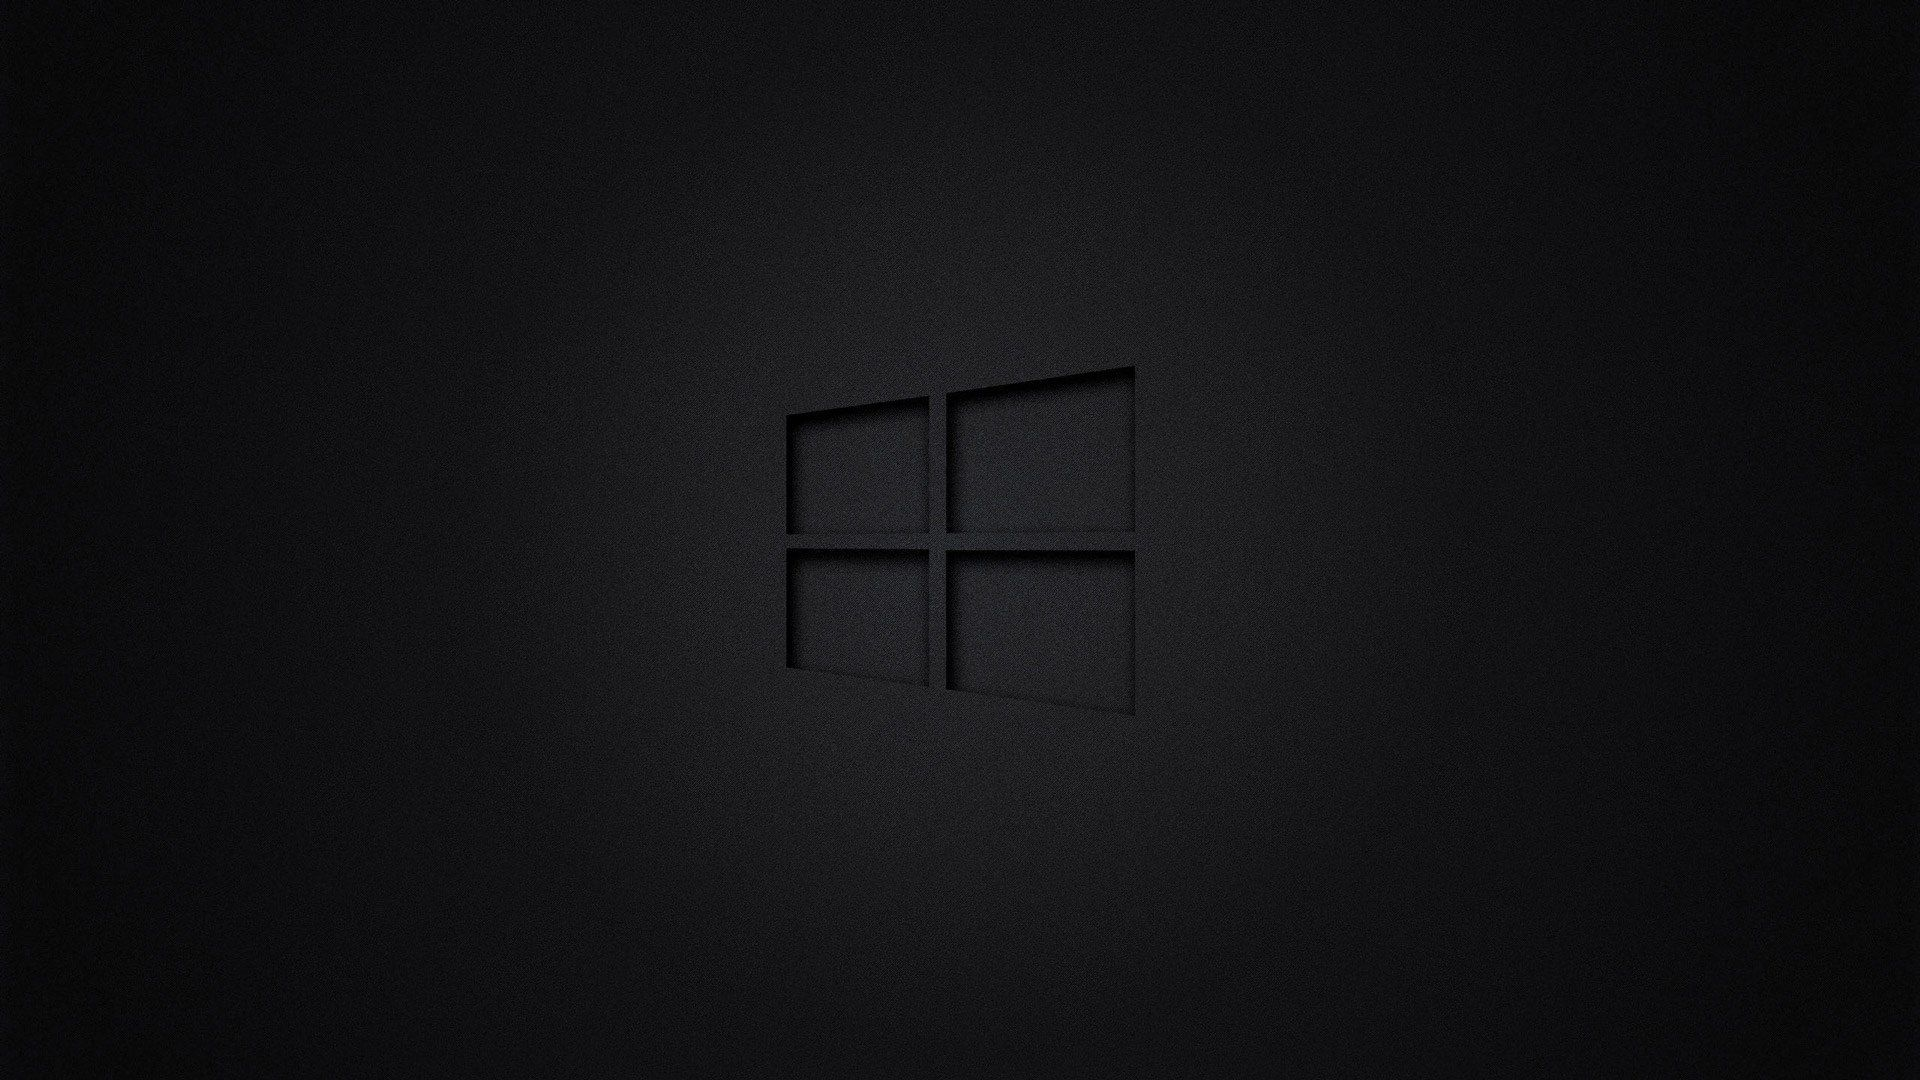 1920x1080 Windows 10 High Res Wallpaper Wallpaper Windows 10 Windows Wallpaper Dark Windows